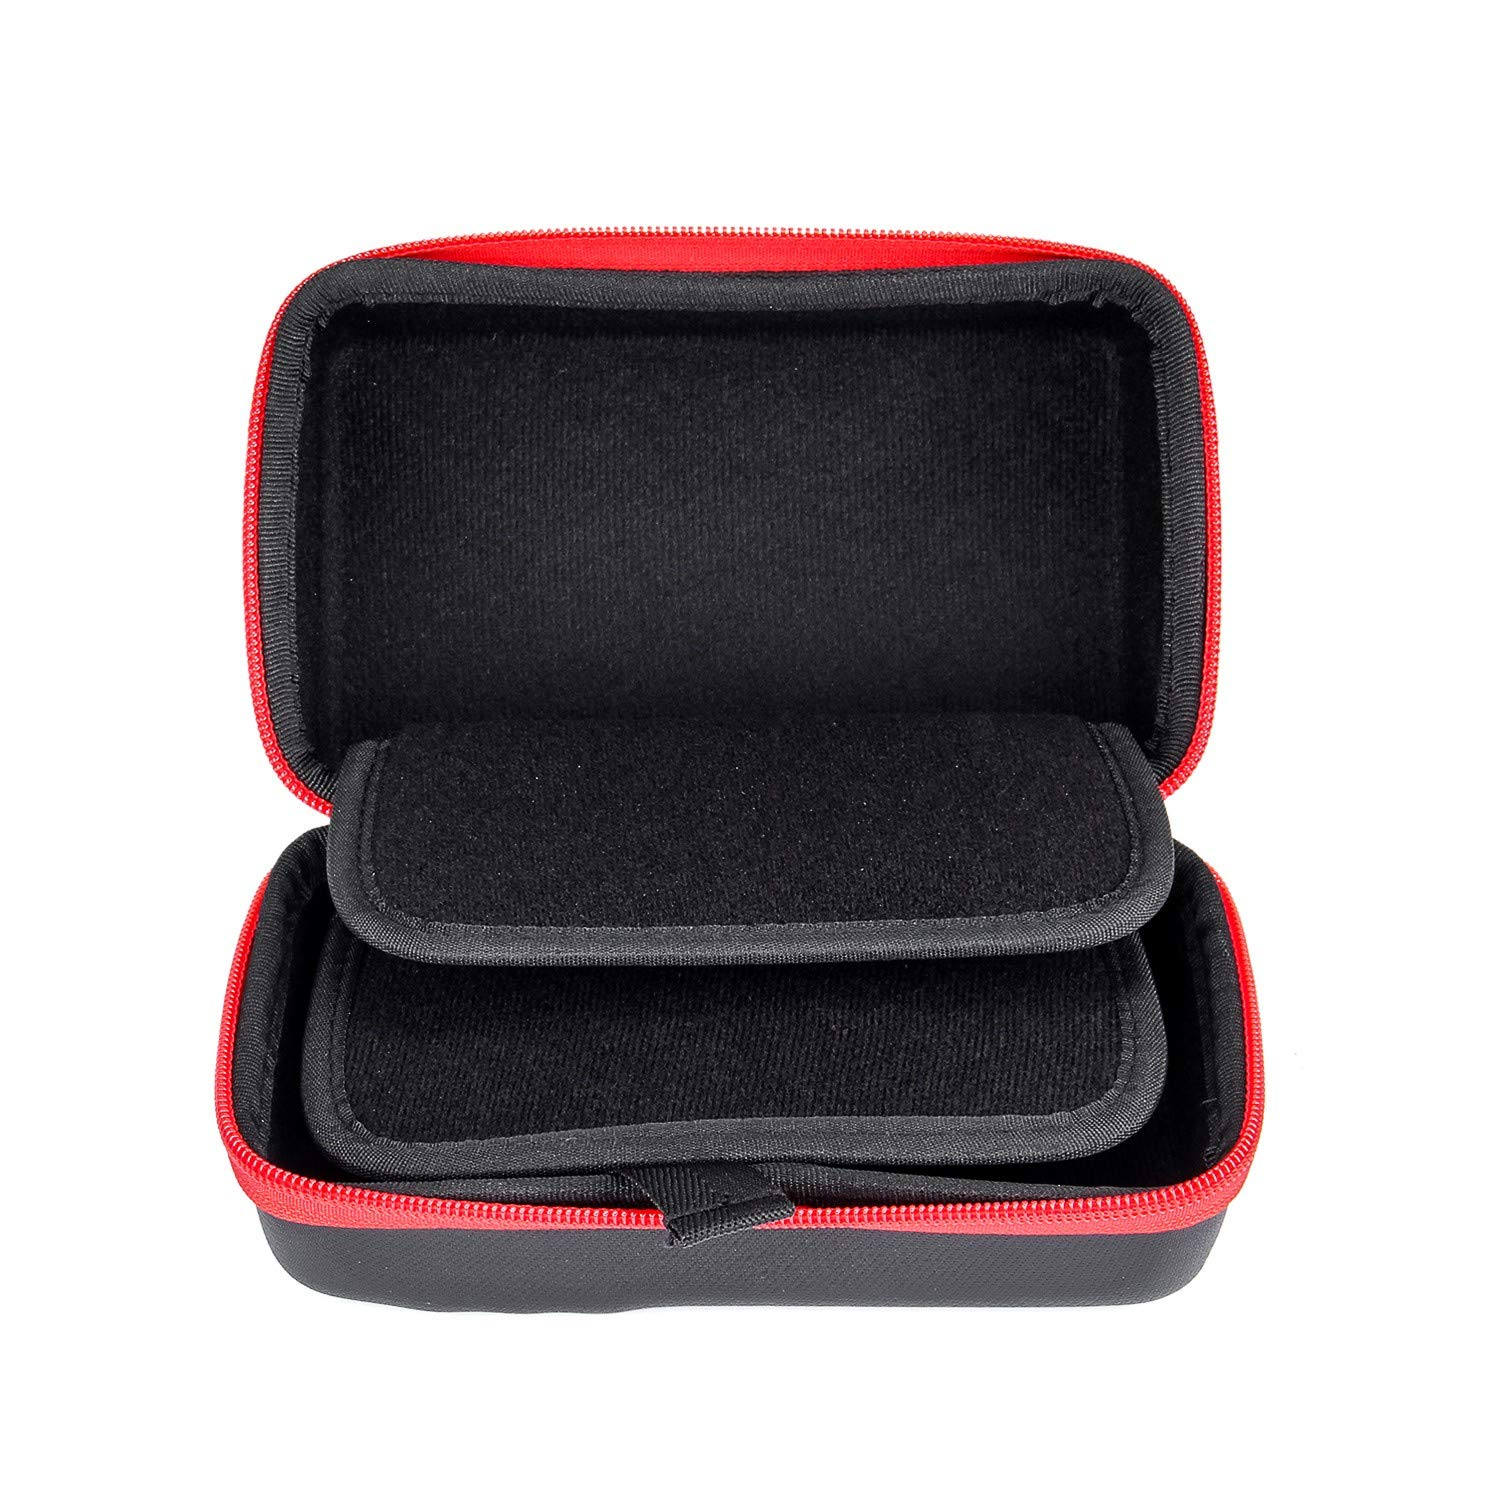 EACHSHOT Universal Portable Carrying Case for Feelworld F5 F6S F6 F450 F570 Master MA5 MA6 Andycine A6 Other 5-5.7 Inch DSLR Video Monitors